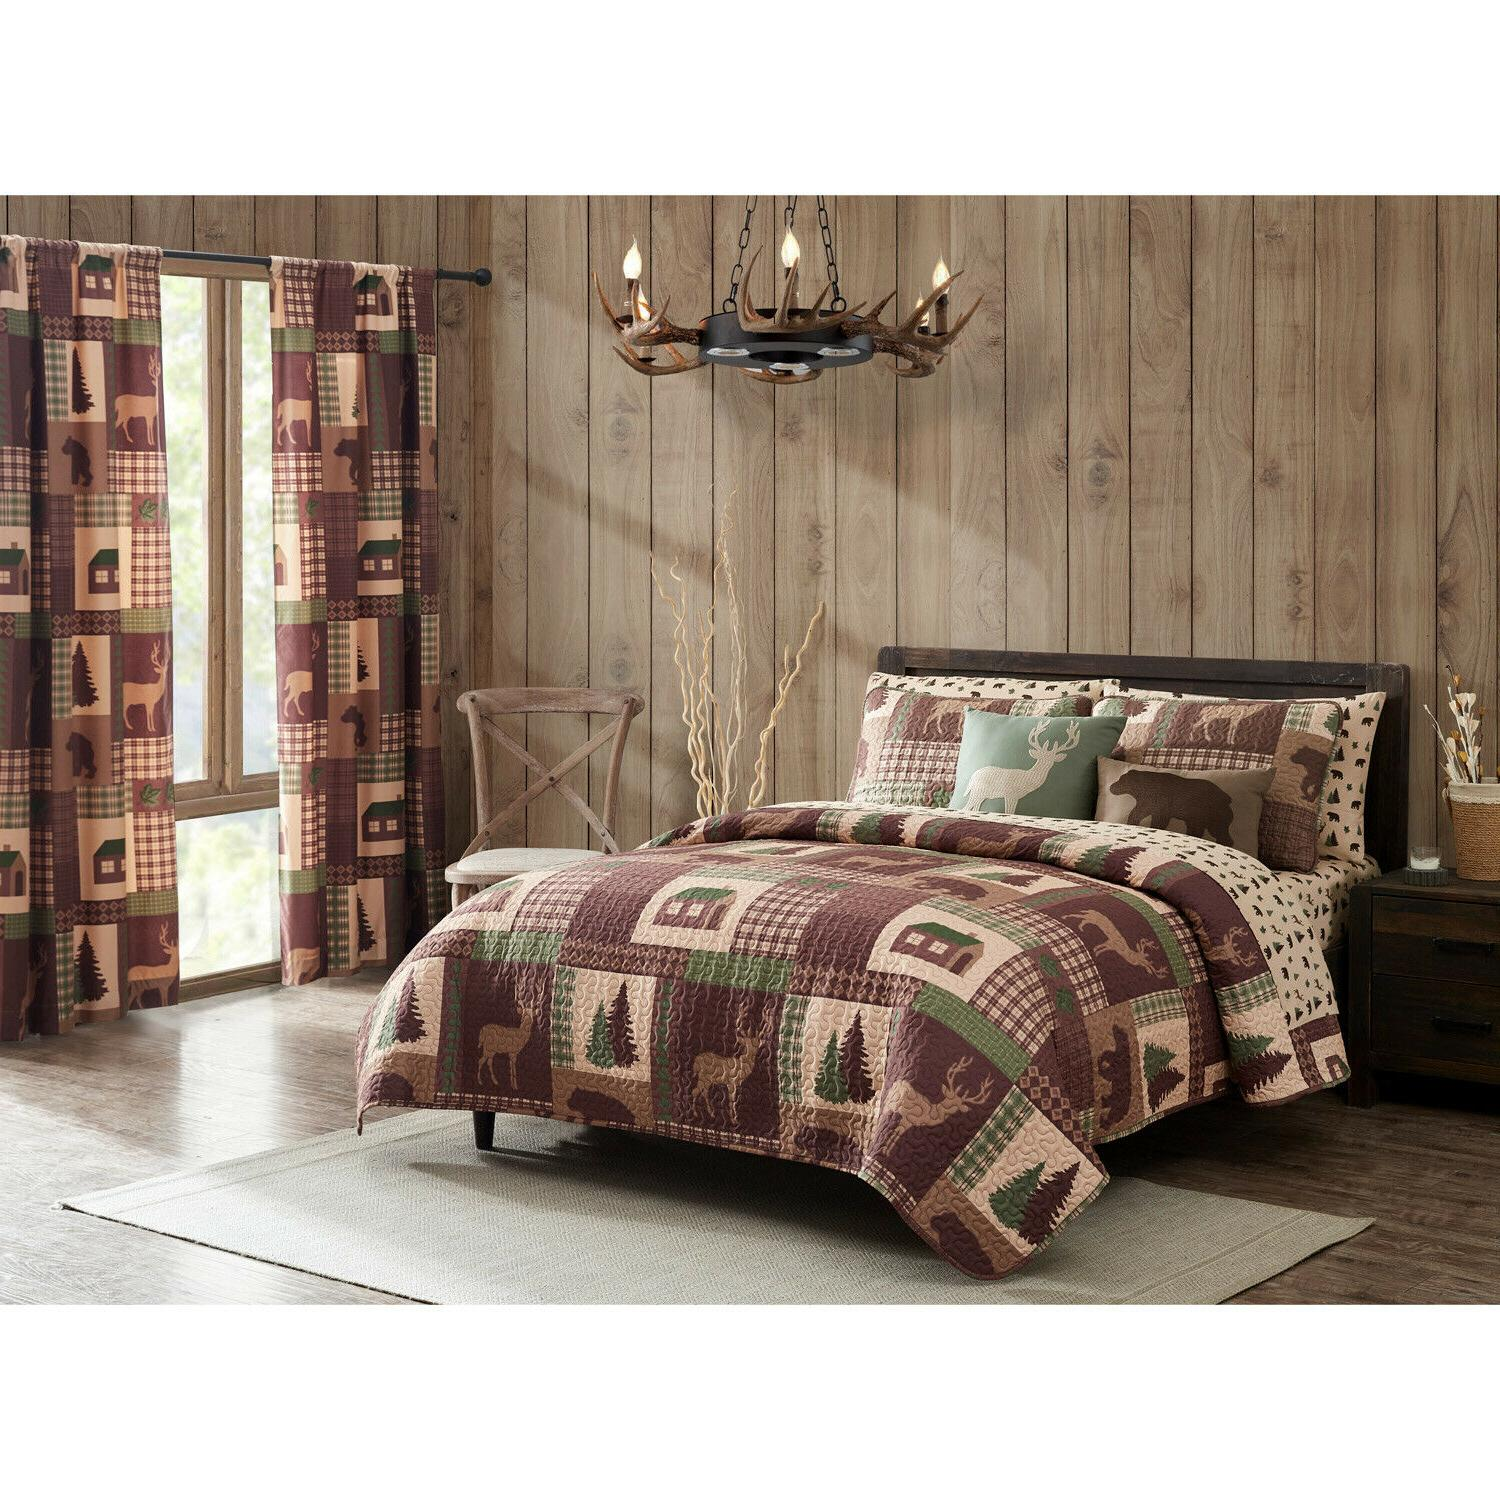 King, Queen, or Quilt Set Rustic Lodge Bedspread